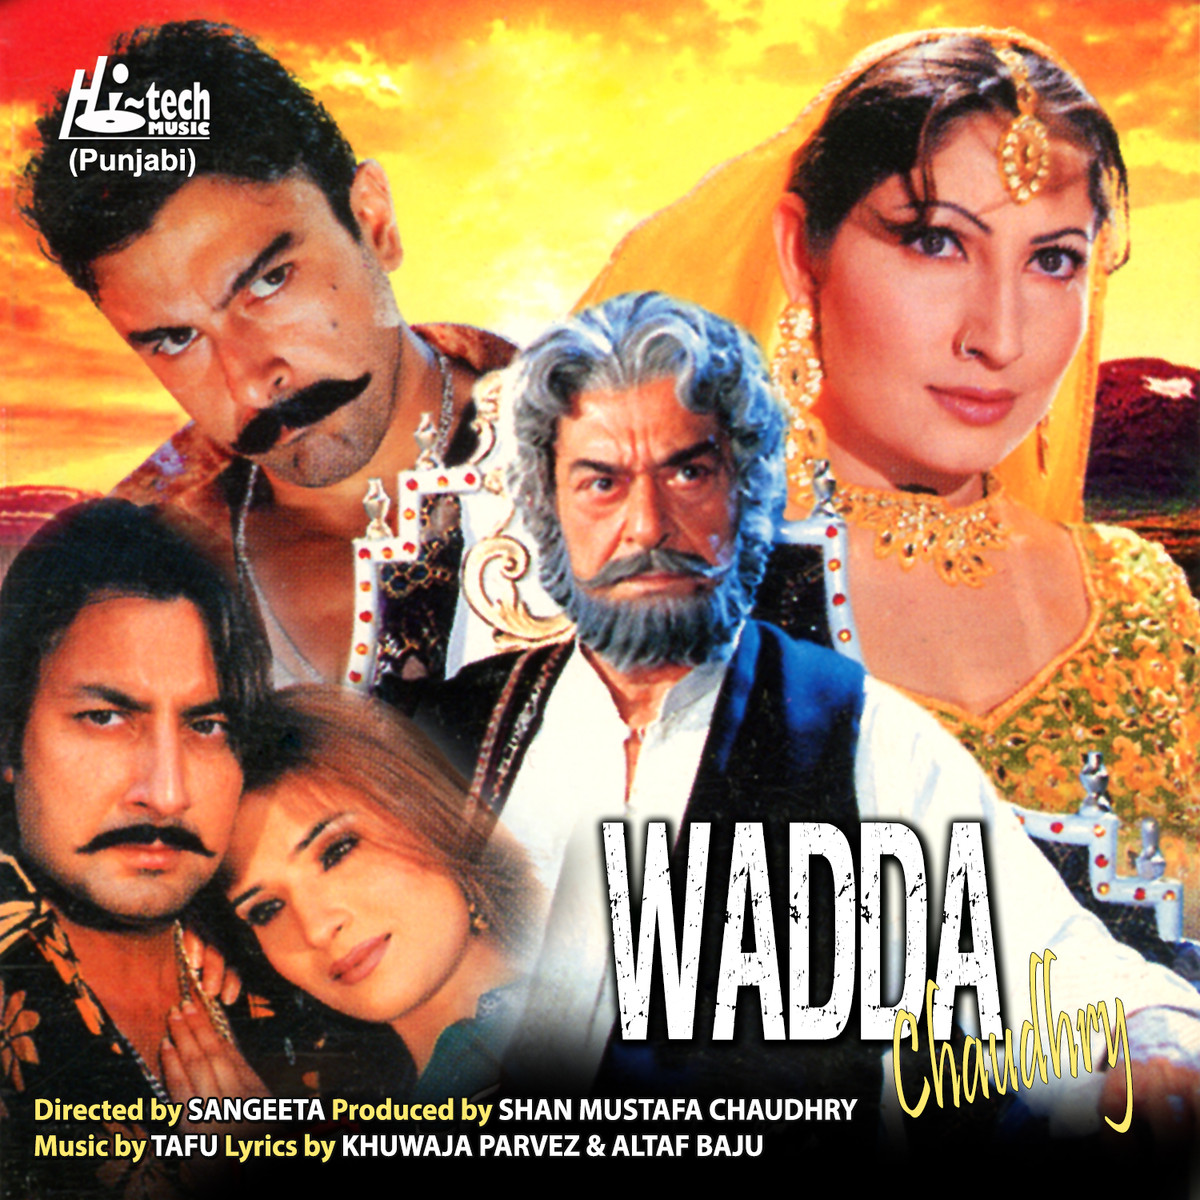 Sheh Song Download By Singaa: Wada Chaudhry Pakistani Film Soundtrack